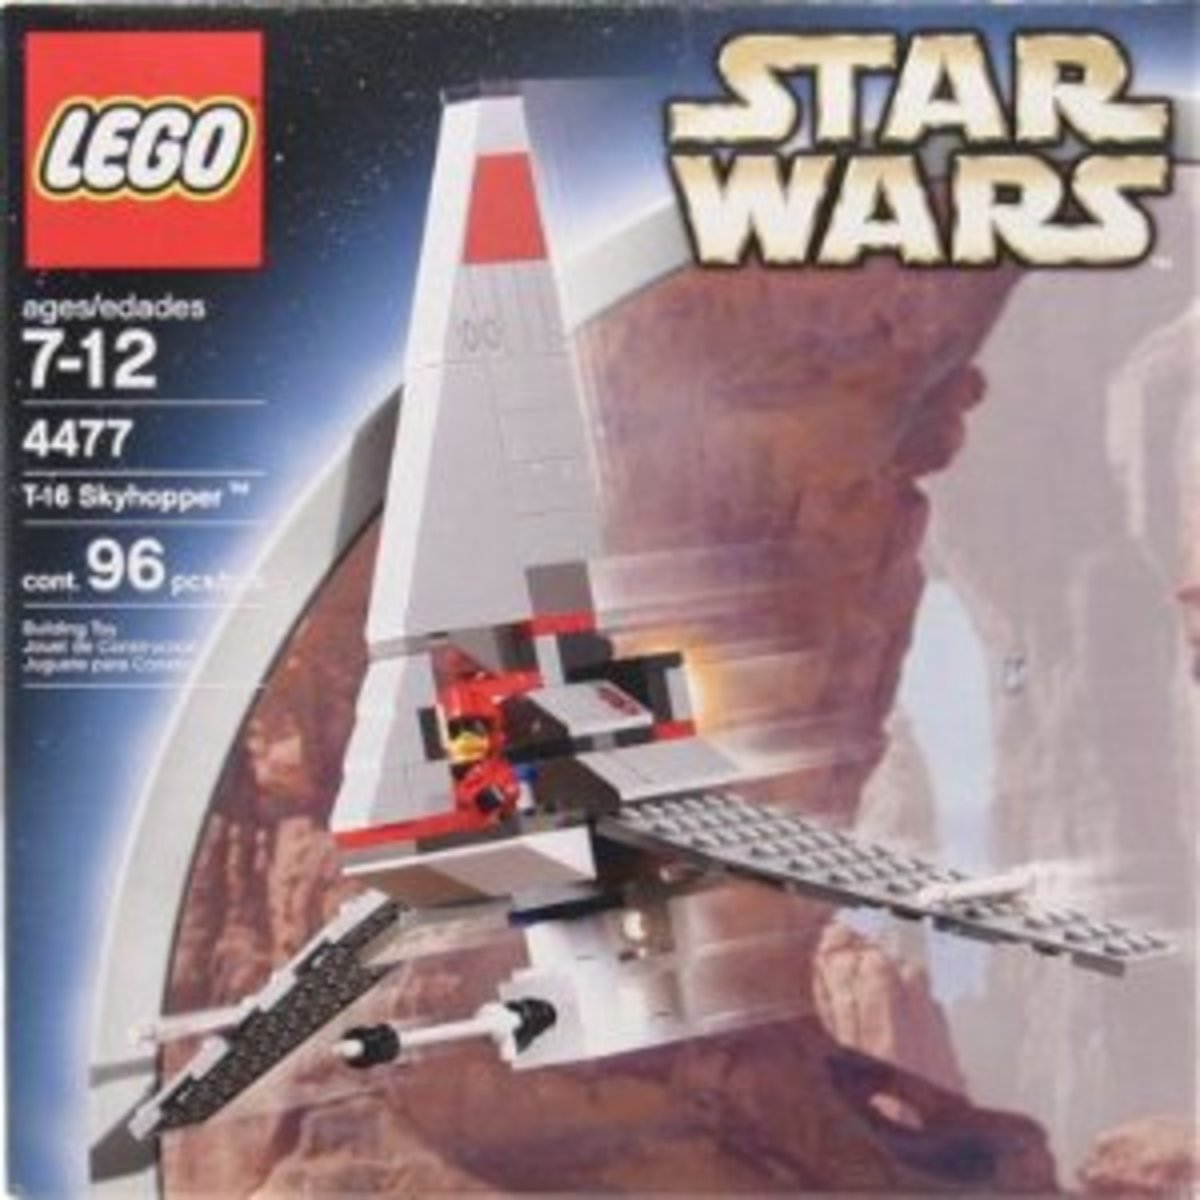 LEGO Star Wars T-16 Skyhopper 4477 Box